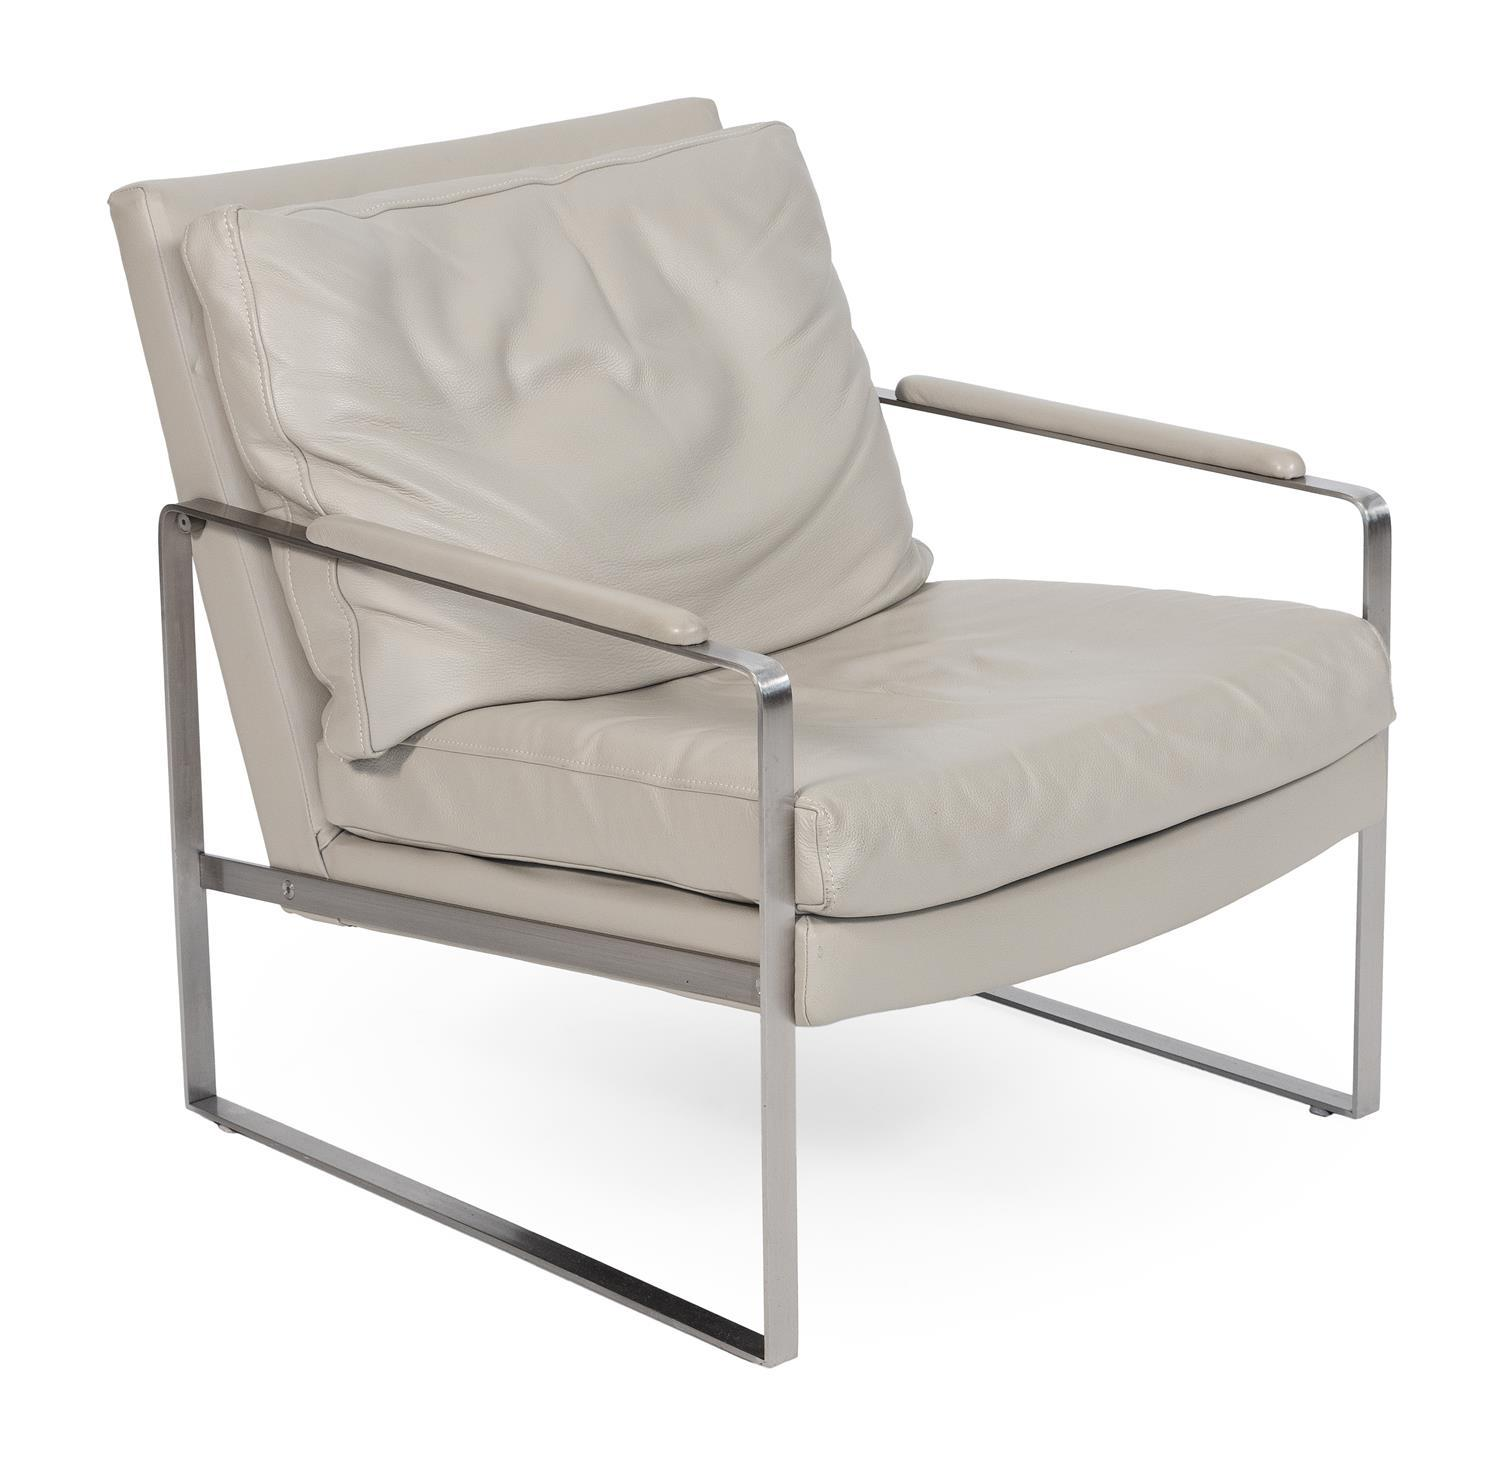 """STAINLESS STEEL ARMCHAIR WITH BEIGE LEATHER UPHOLSTERY Unmarked. Back height 31"""". Seat height 17.5""""."""